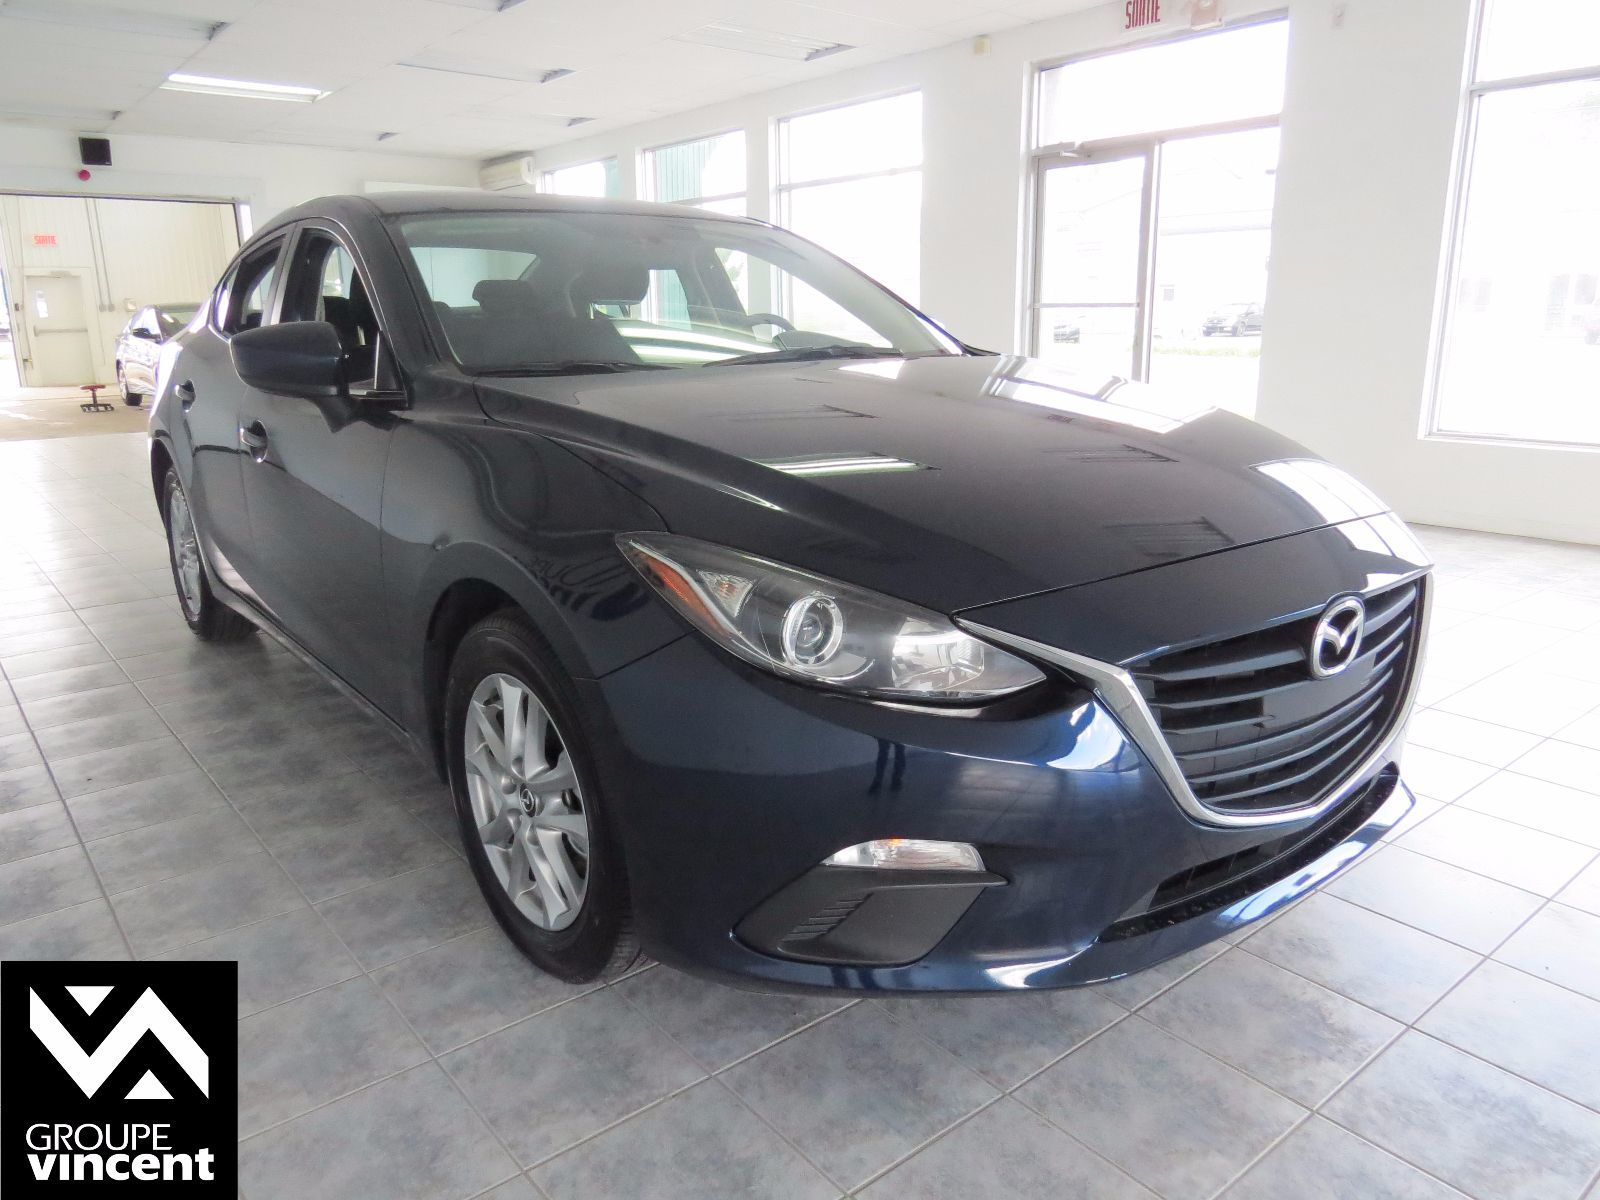 mazda 3 gs sky grand ecran 2014 d 39 occasion. Black Bedroom Furniture Sets. Home Design Ideas